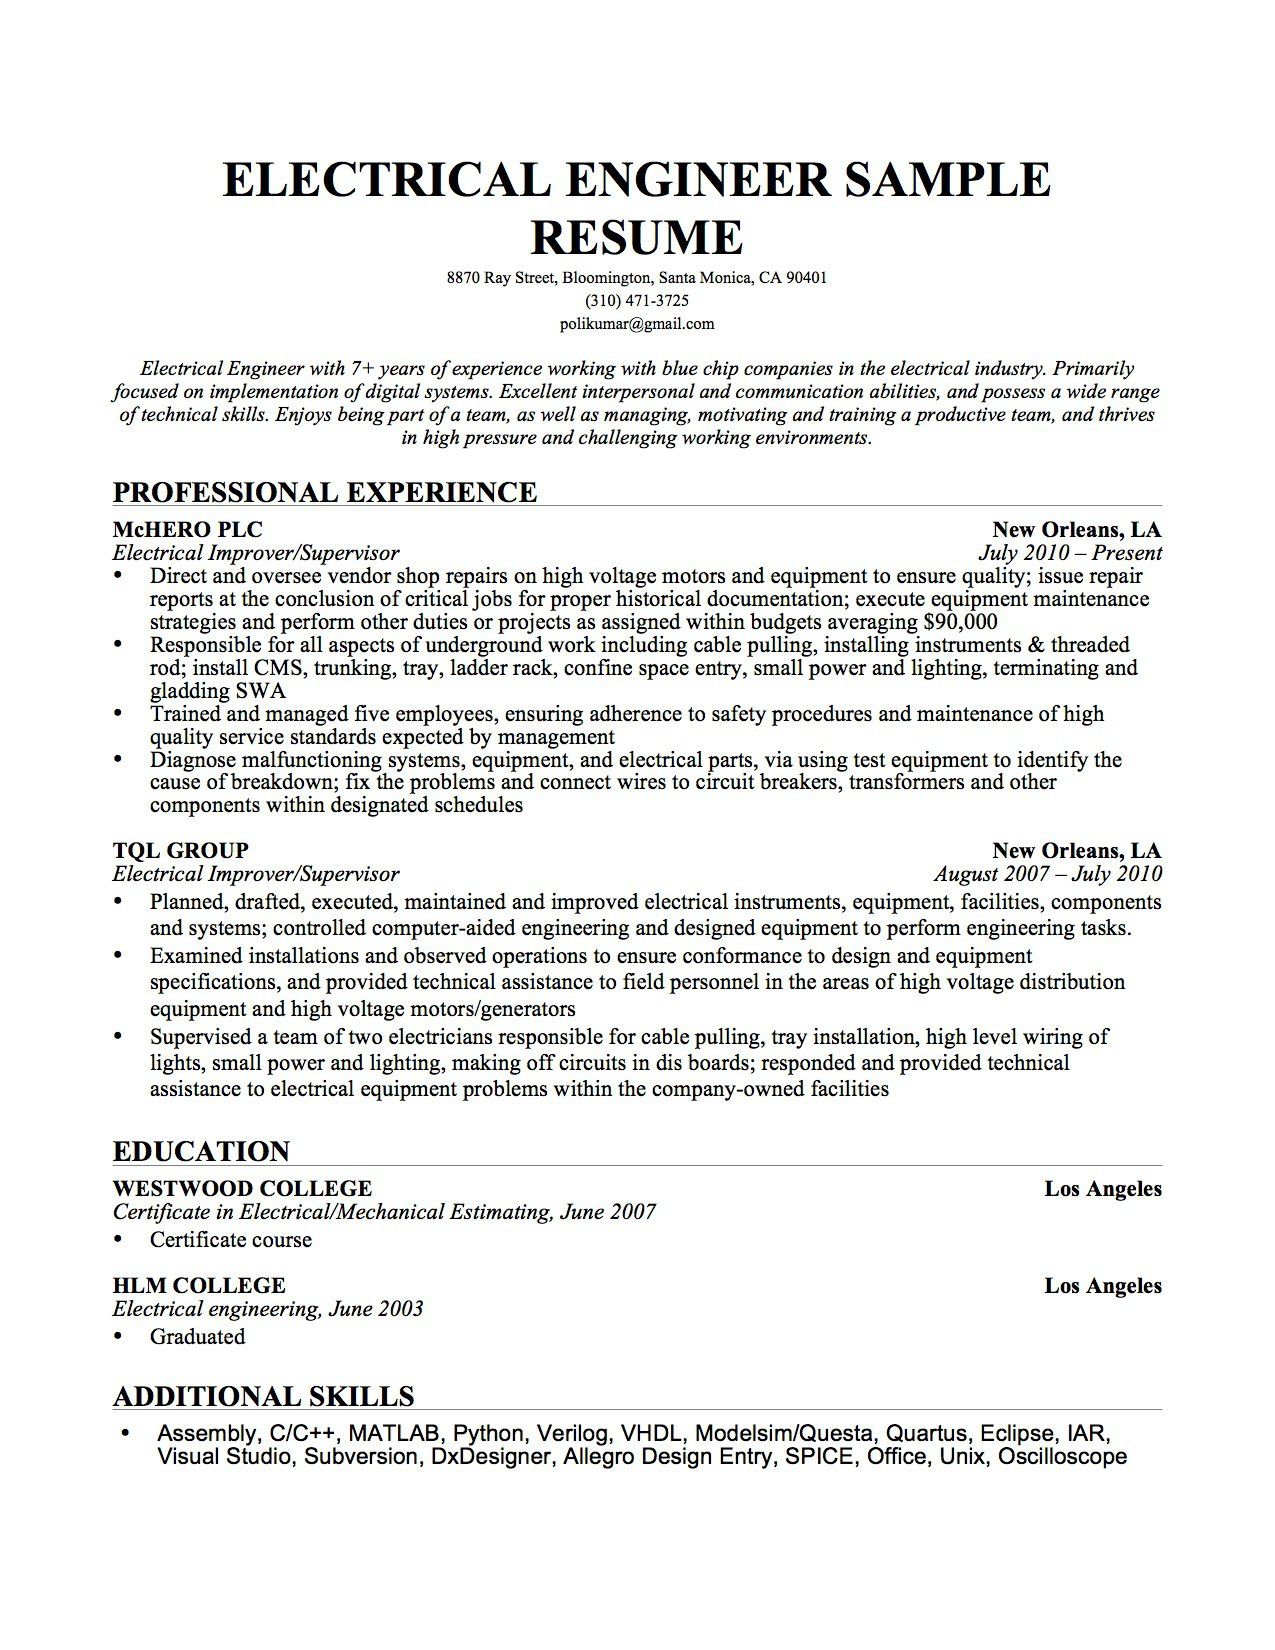 engineer sample resume equipment fixed biomedical job objective examples career for aviation cashier skills